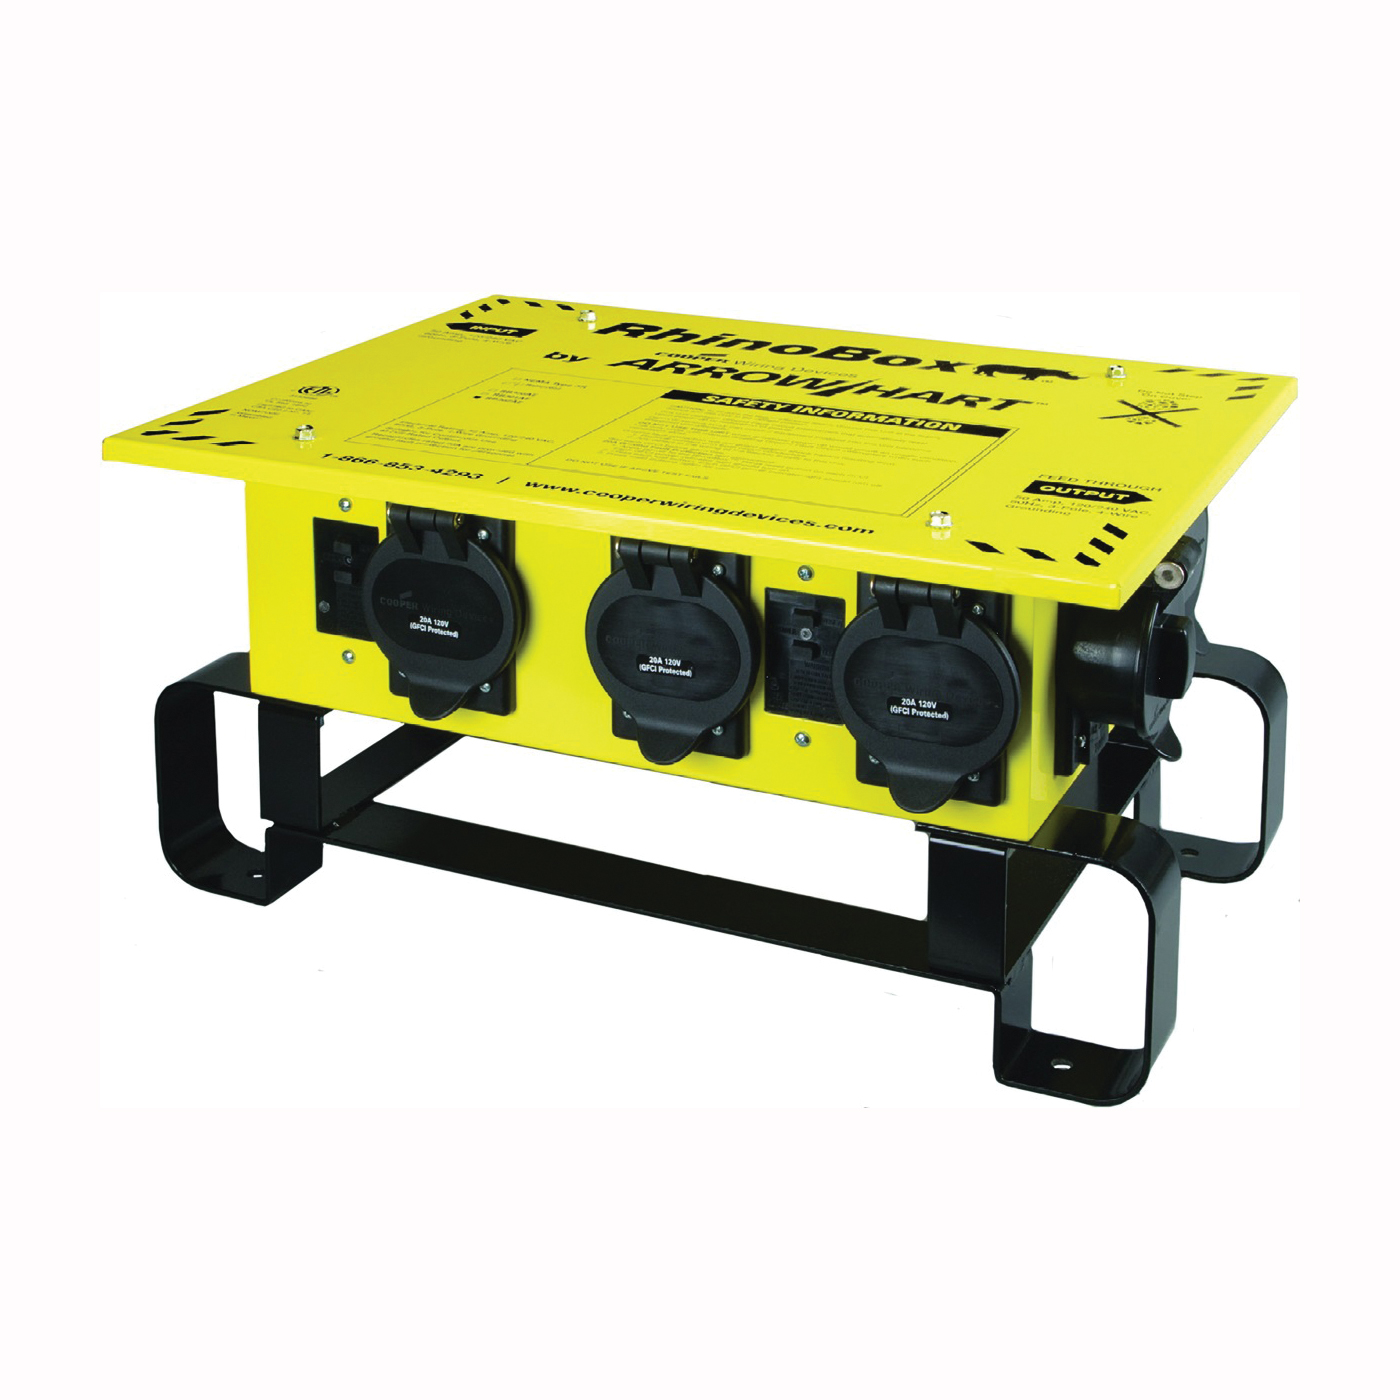 Picture of Arrow Hart Rhino Box RB300ME GFCI Power Center, 120/240 V